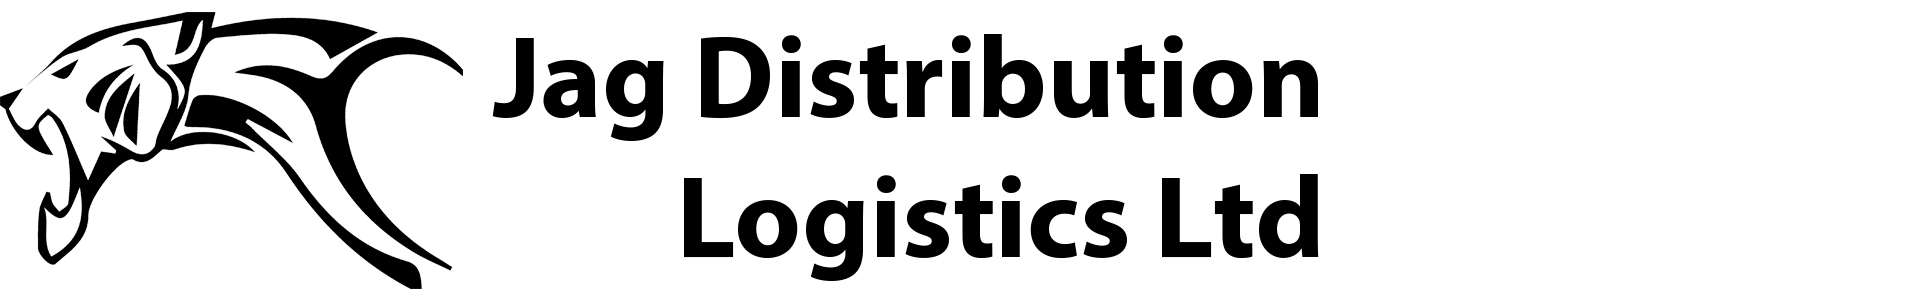 Jag Distribution Logistics Ltd